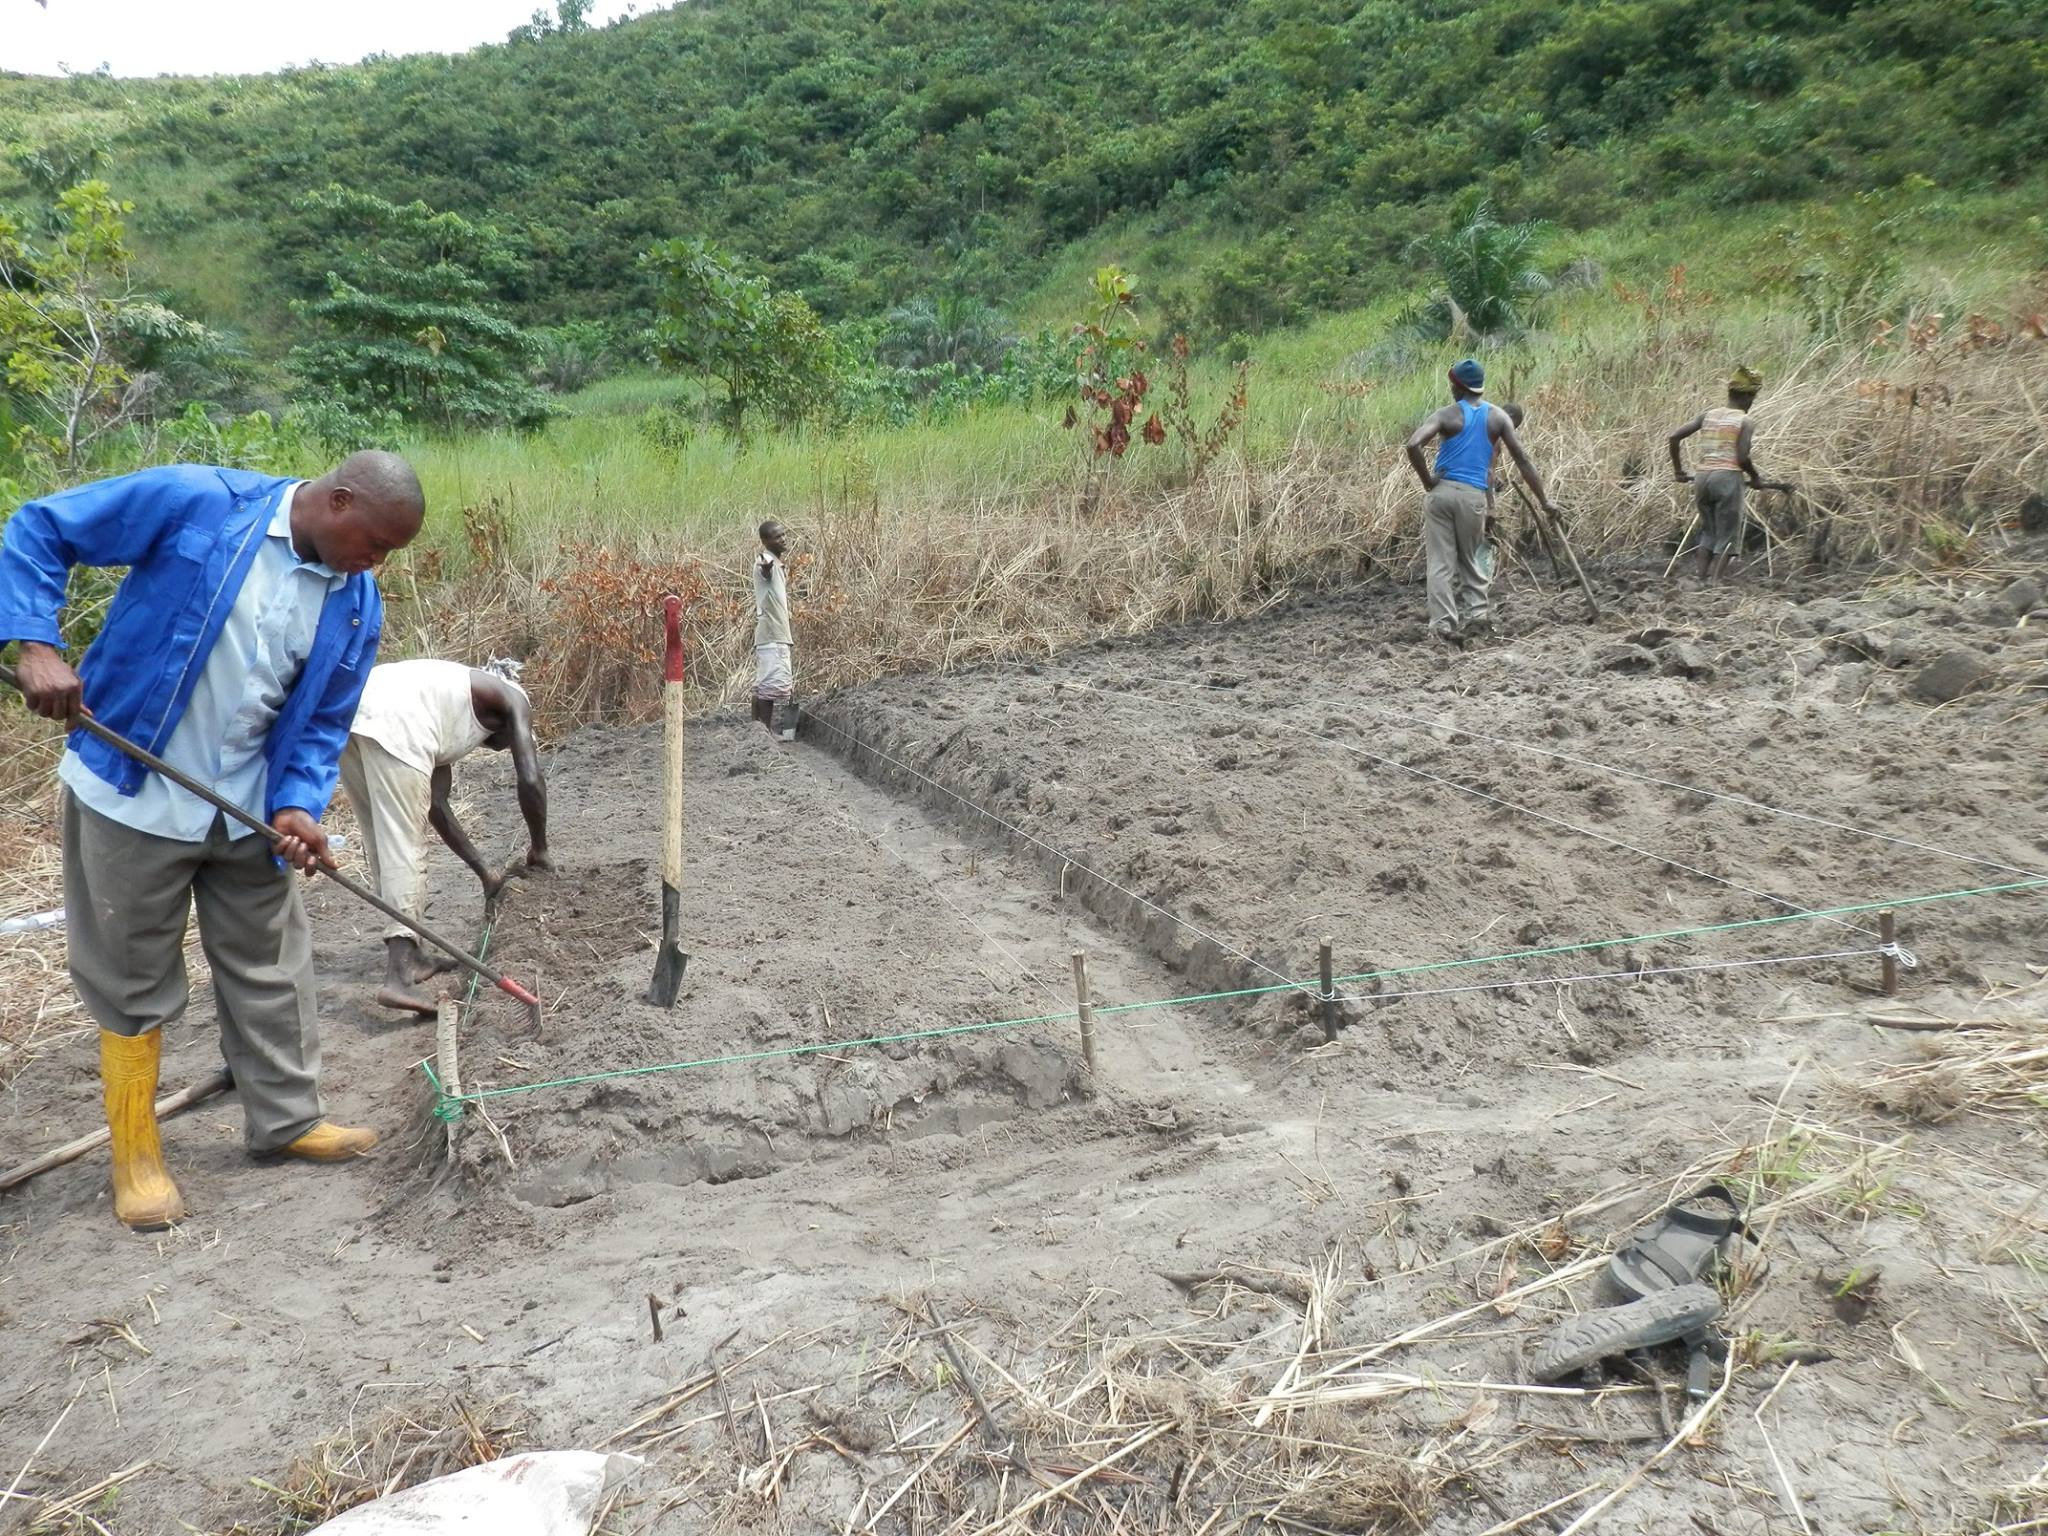 CERED research focuses on the impact of climate change in the Kinshasa area. Photo credit: CERED